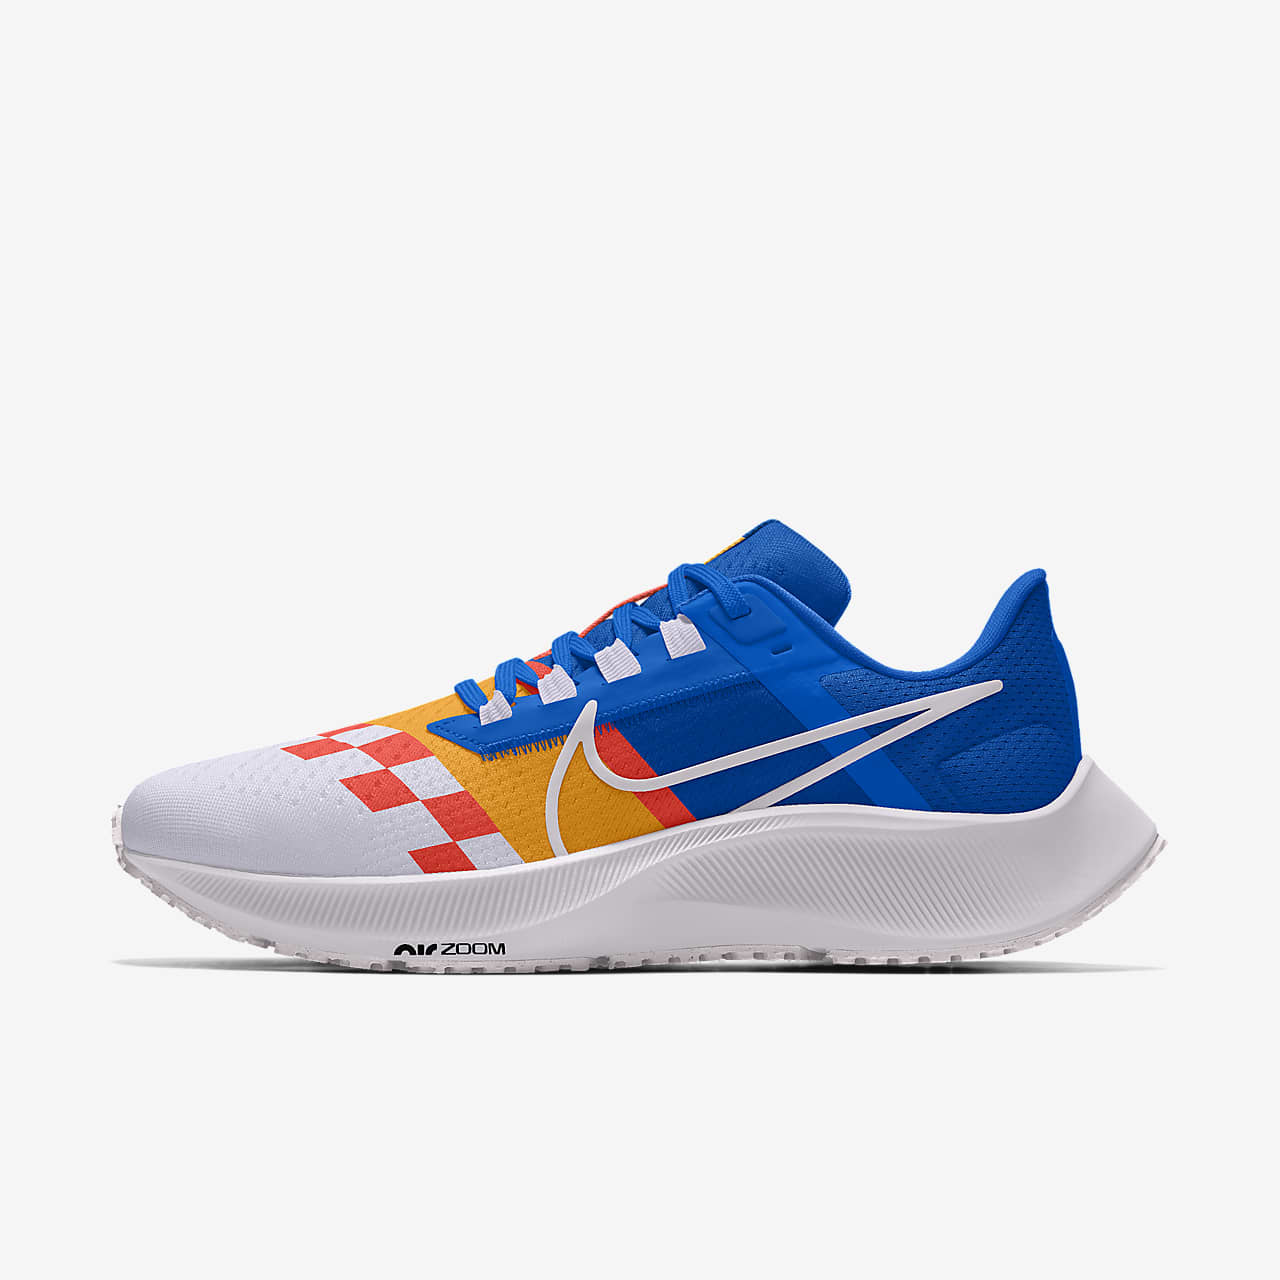 Chaussure de running personnalisable Nike Air Zoom Pegasus38 By You pour Homme